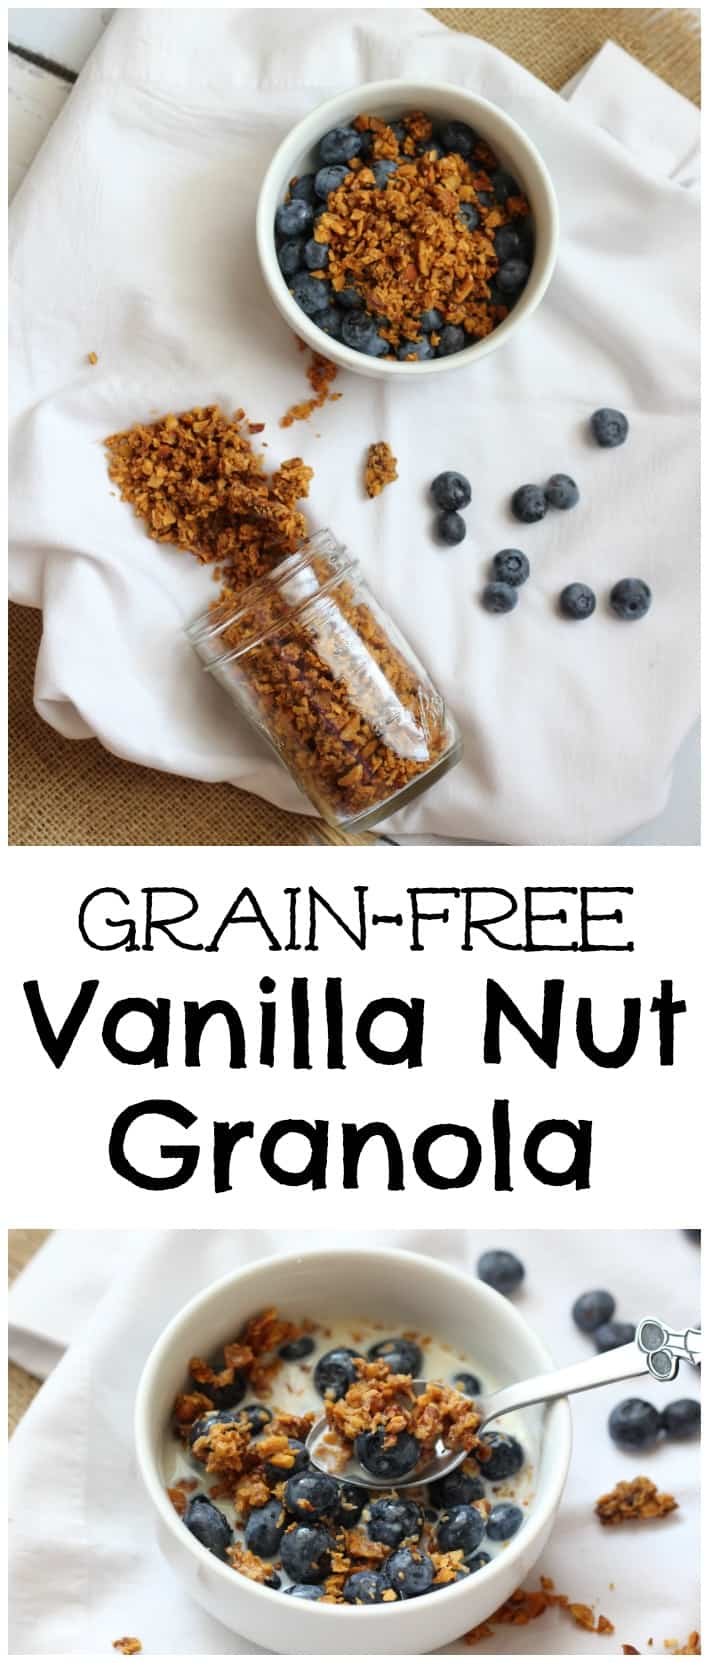 I developed this cereal clusters recipe for my son who needs a grain free, gluten free version. We love this vanilla nut granola!